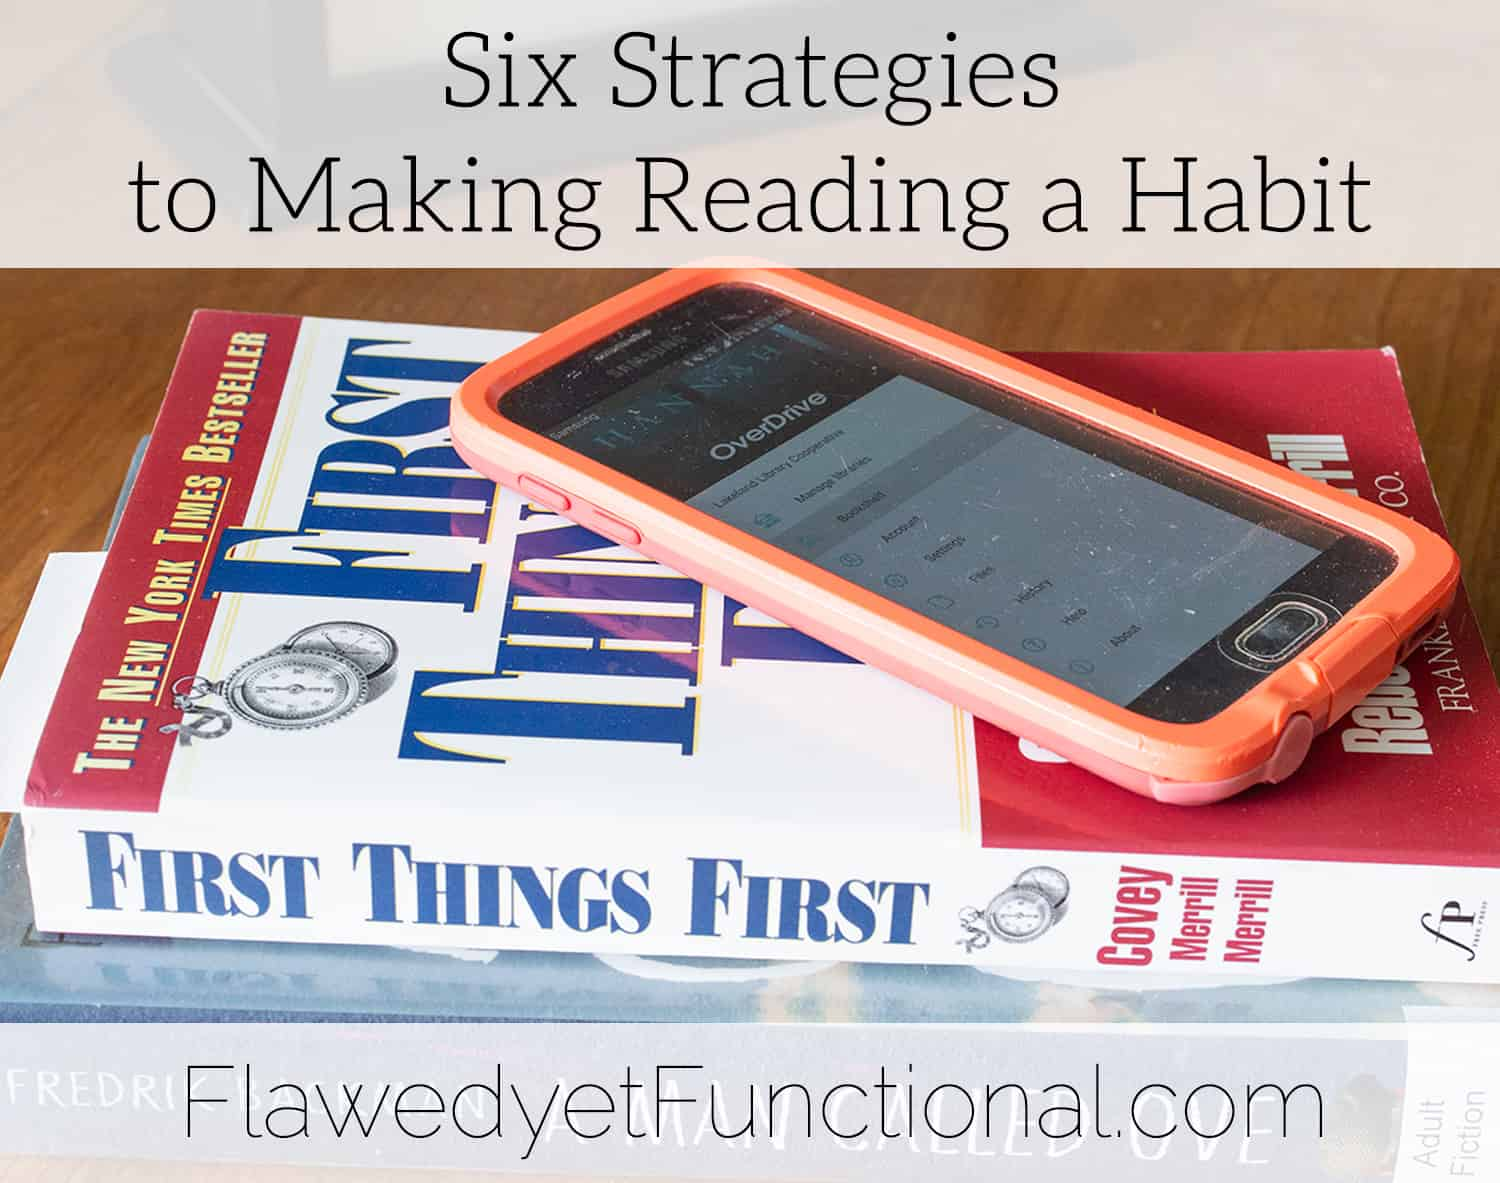 Healthy Habits | Six Strategies to Make Reading a Habit